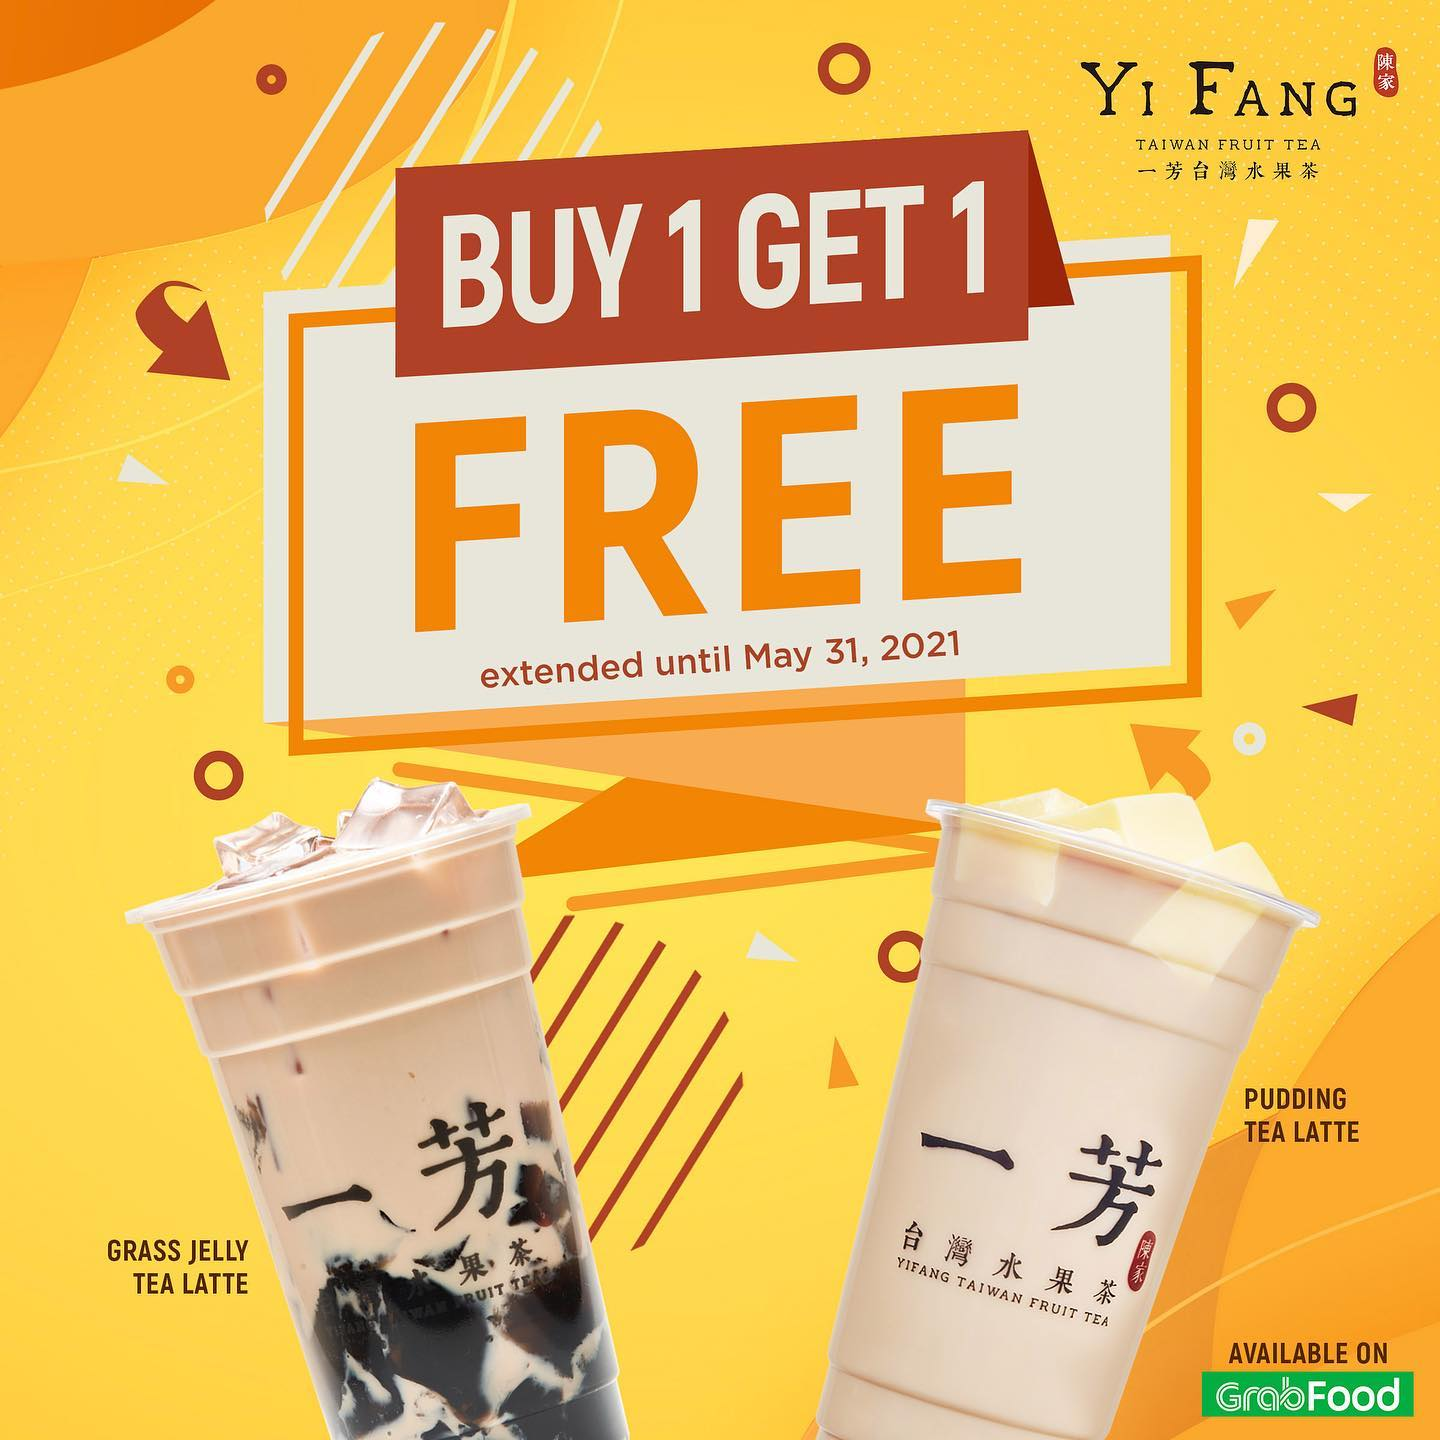 Yi Fang Promo Buy 1 Take 1 on Grass Jelly Tea Latte and Pudding Tea Latte